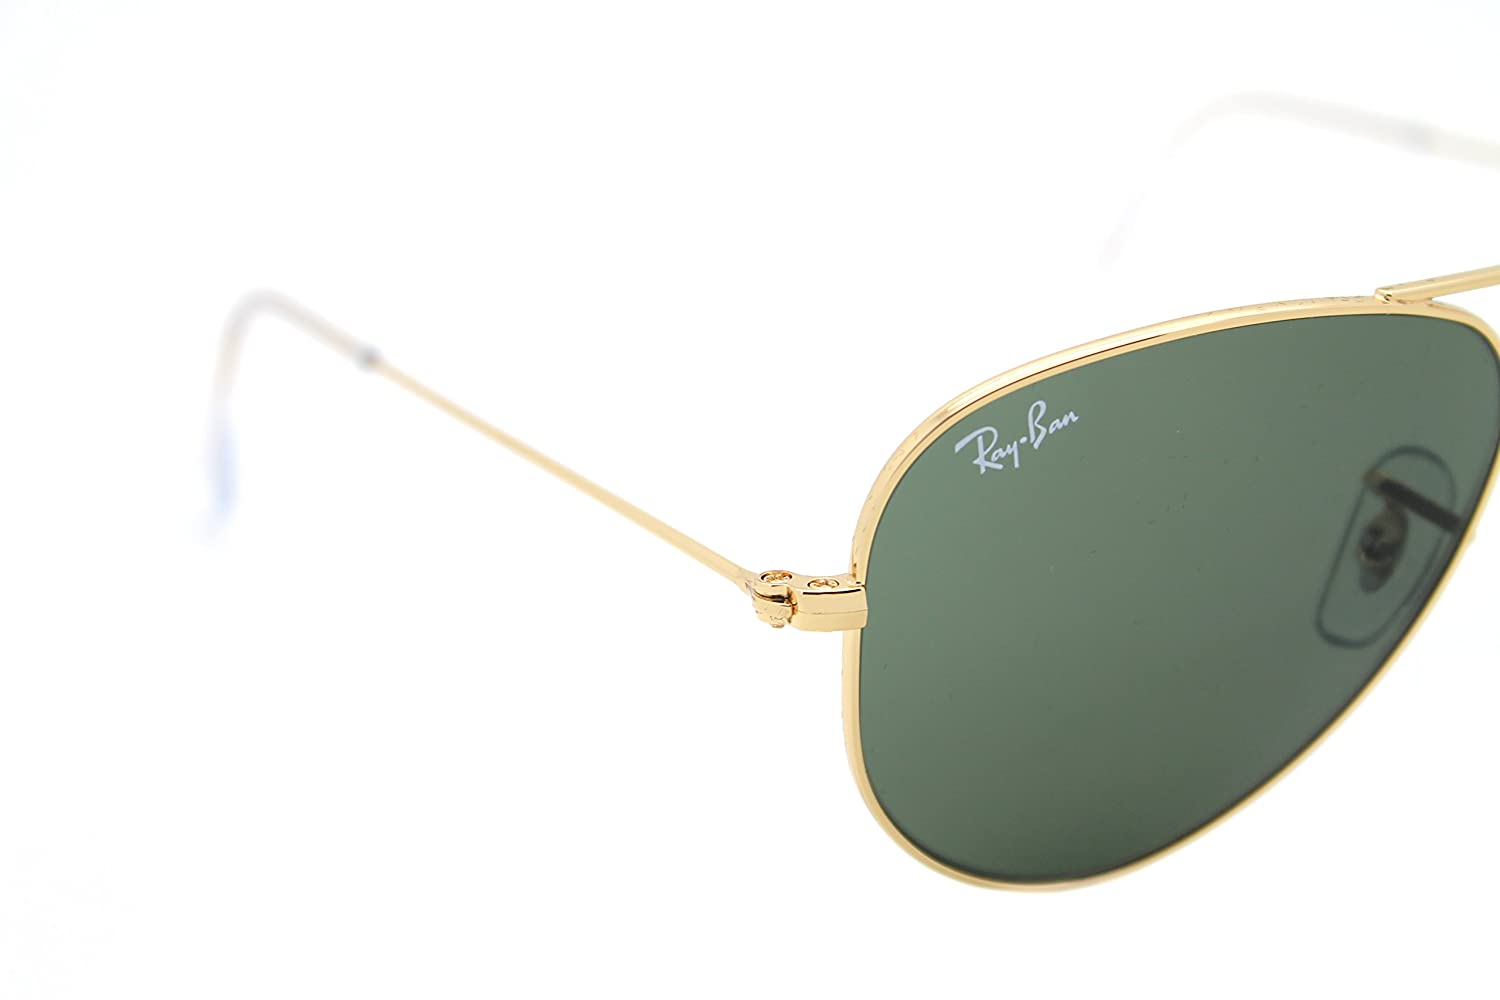 684d56246d Amazon.com  RAY BAN AVIATOR RB 3044 L0207 52mm GOLD FRAME W  G-15XLT GREEN SUNGLASSES  SMALL  Shoes